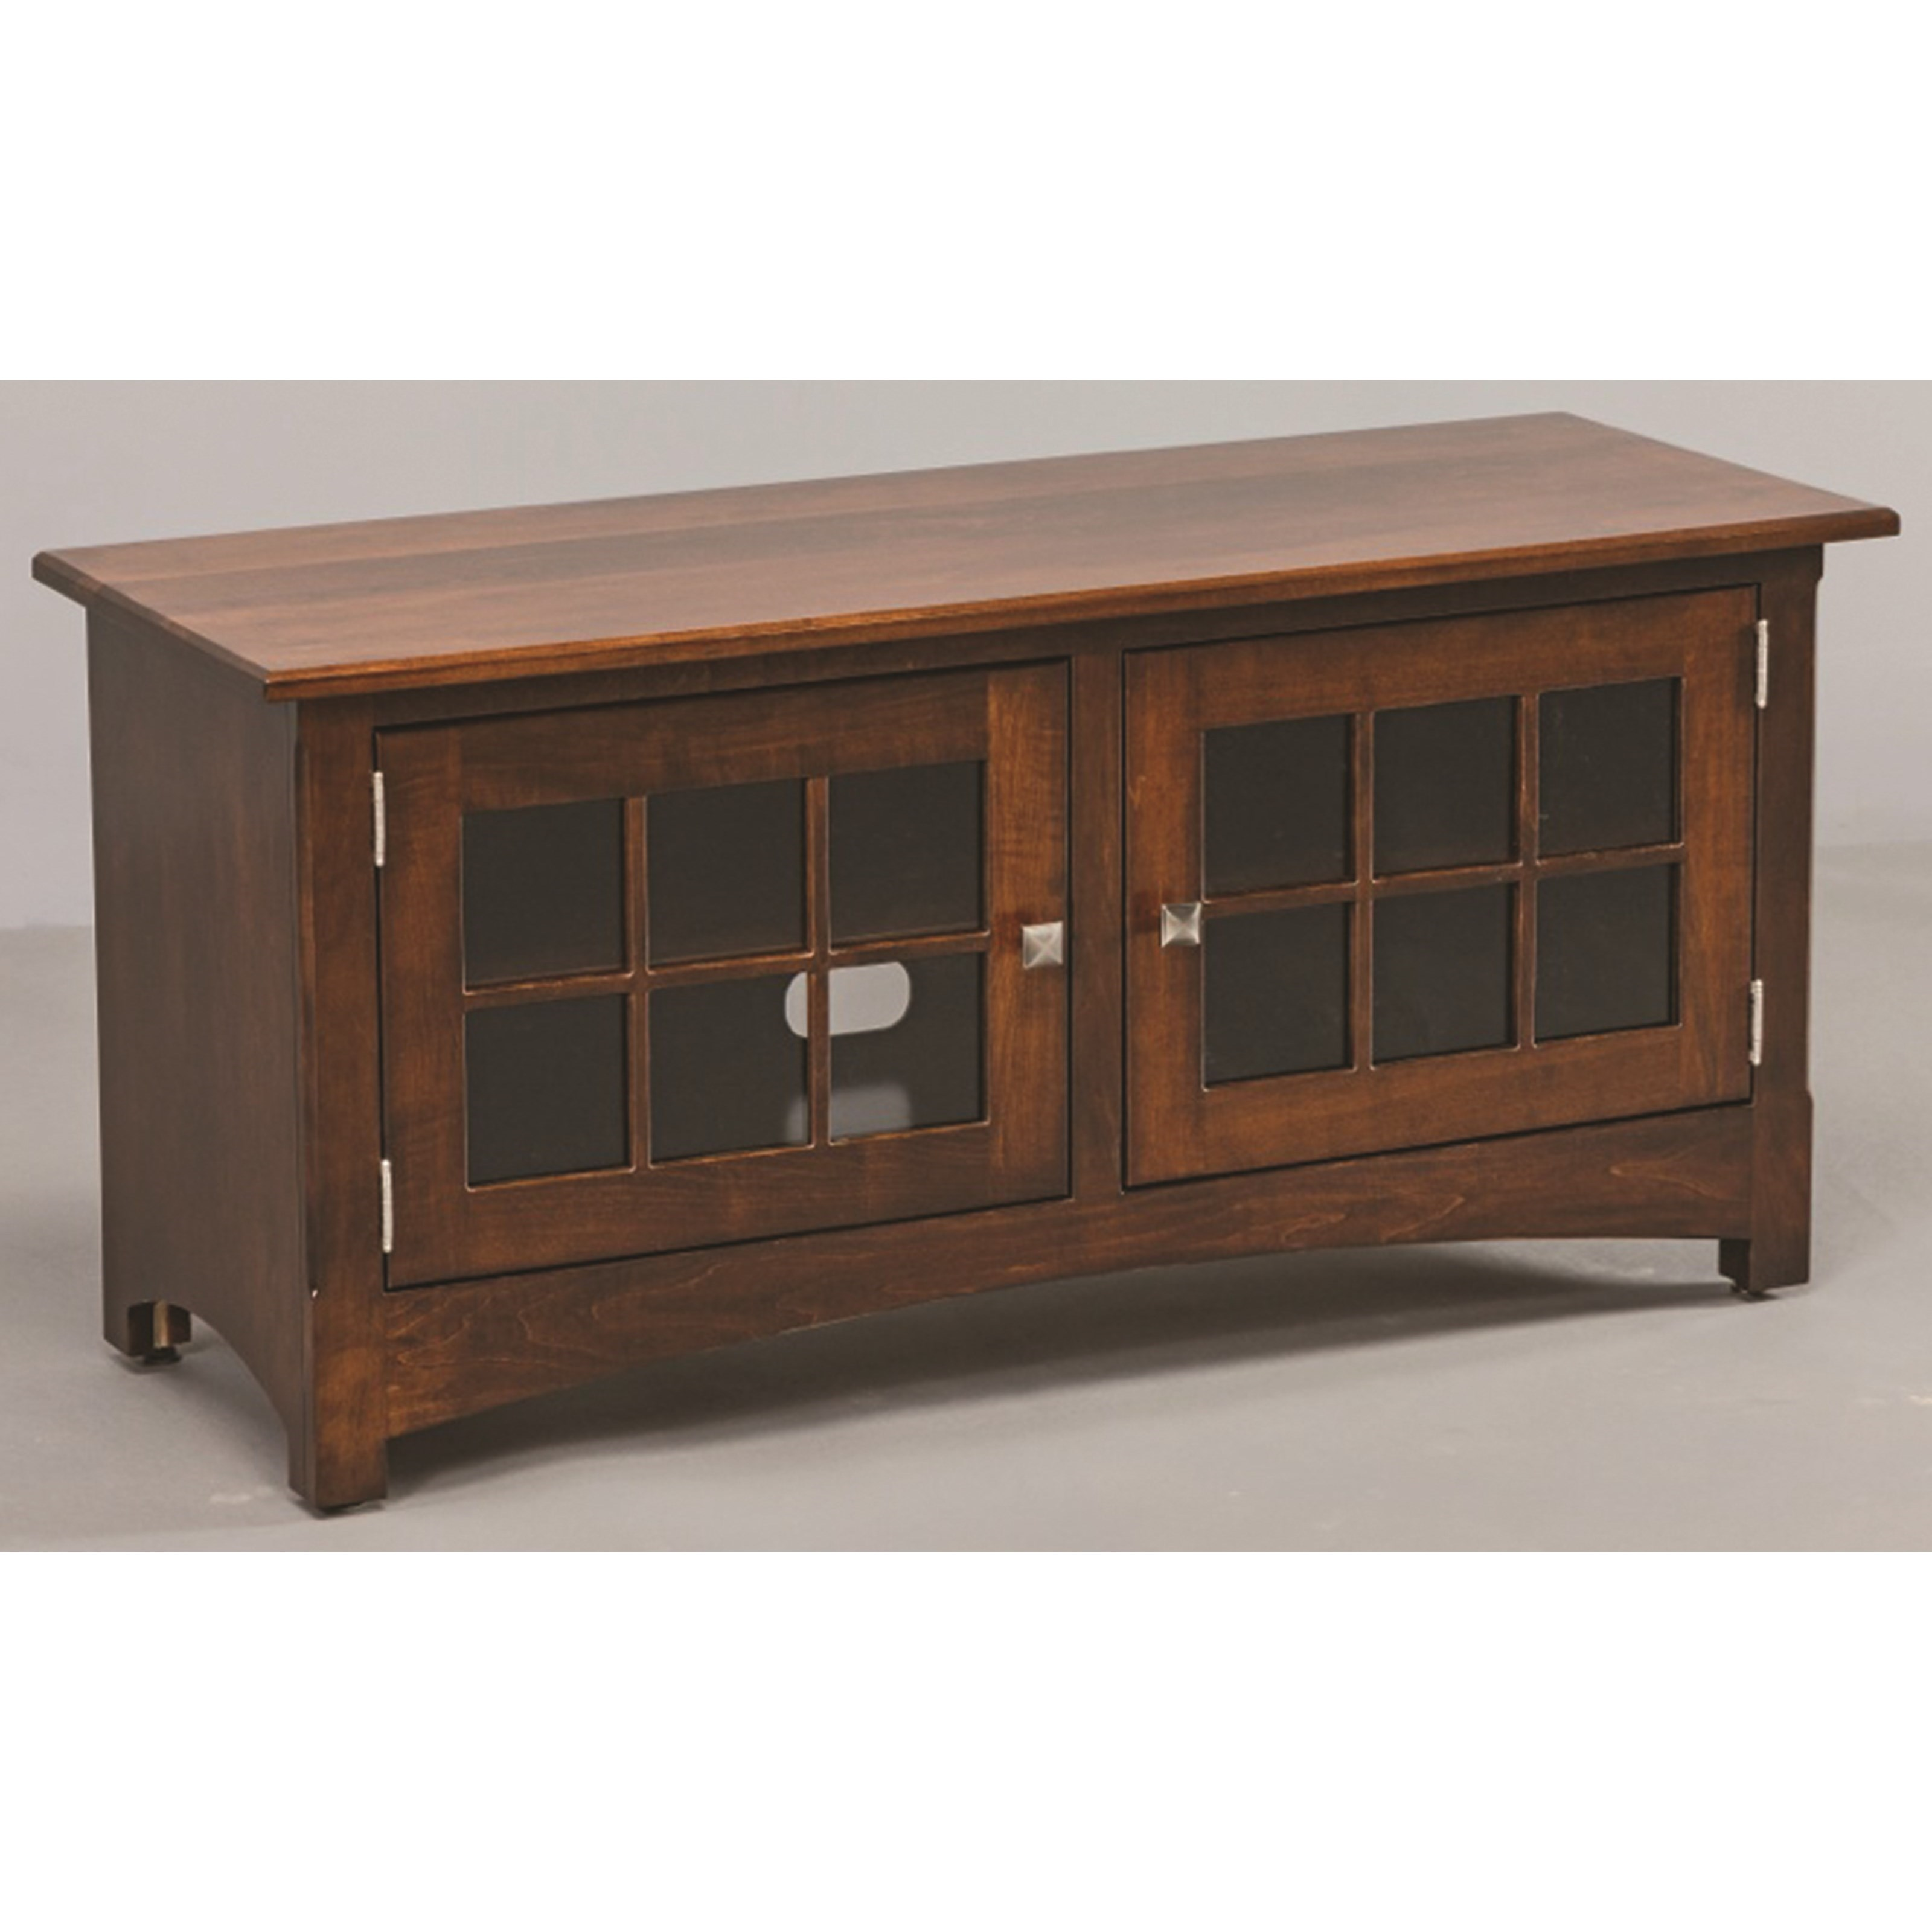 """Entertainment Rockford 48"""" TV Stand by INTEG Wood Products at Saugerties Furniture Mart"""